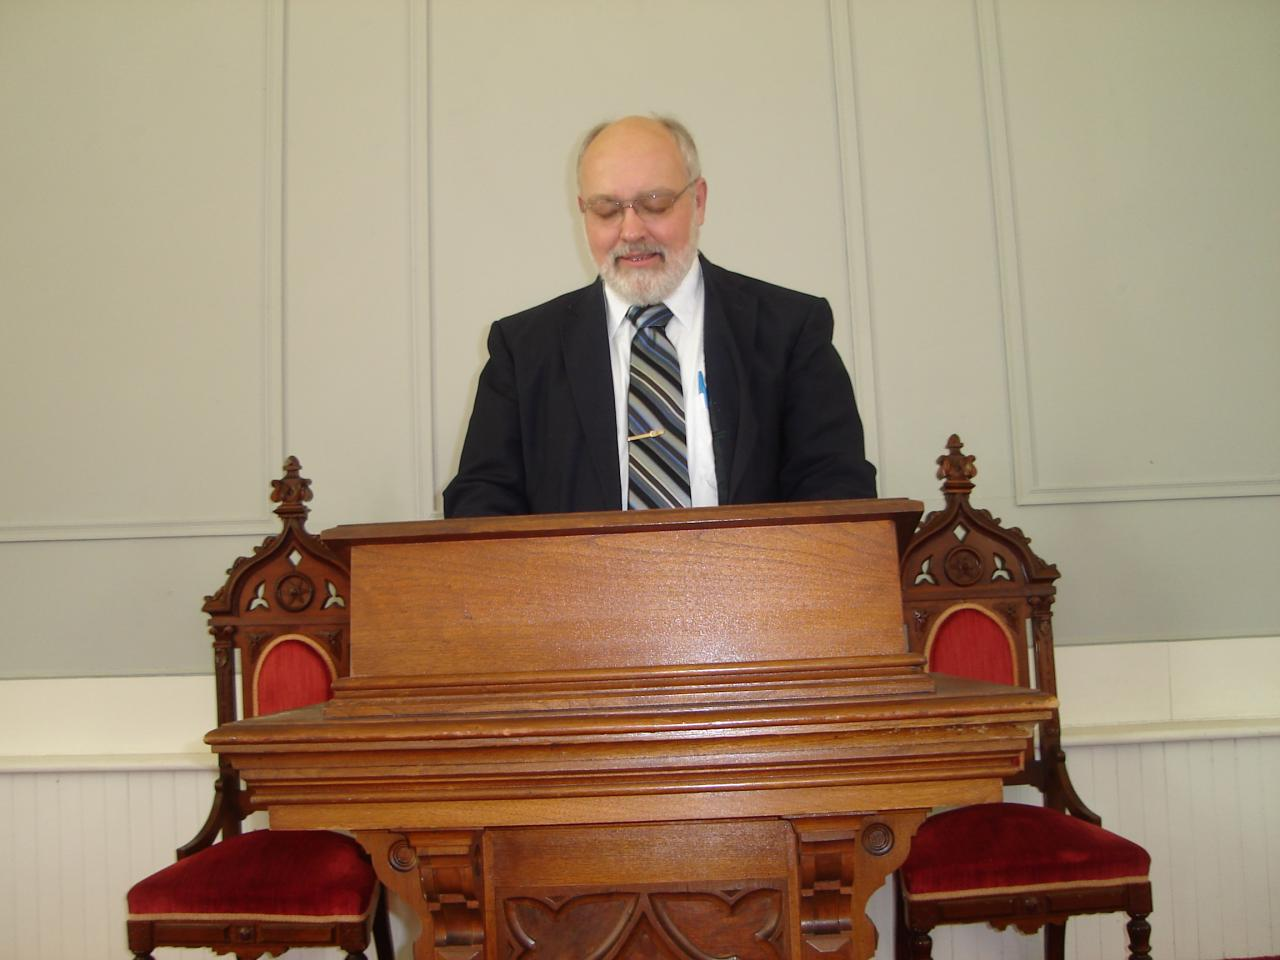 Pastor Wayne at the Pulpit